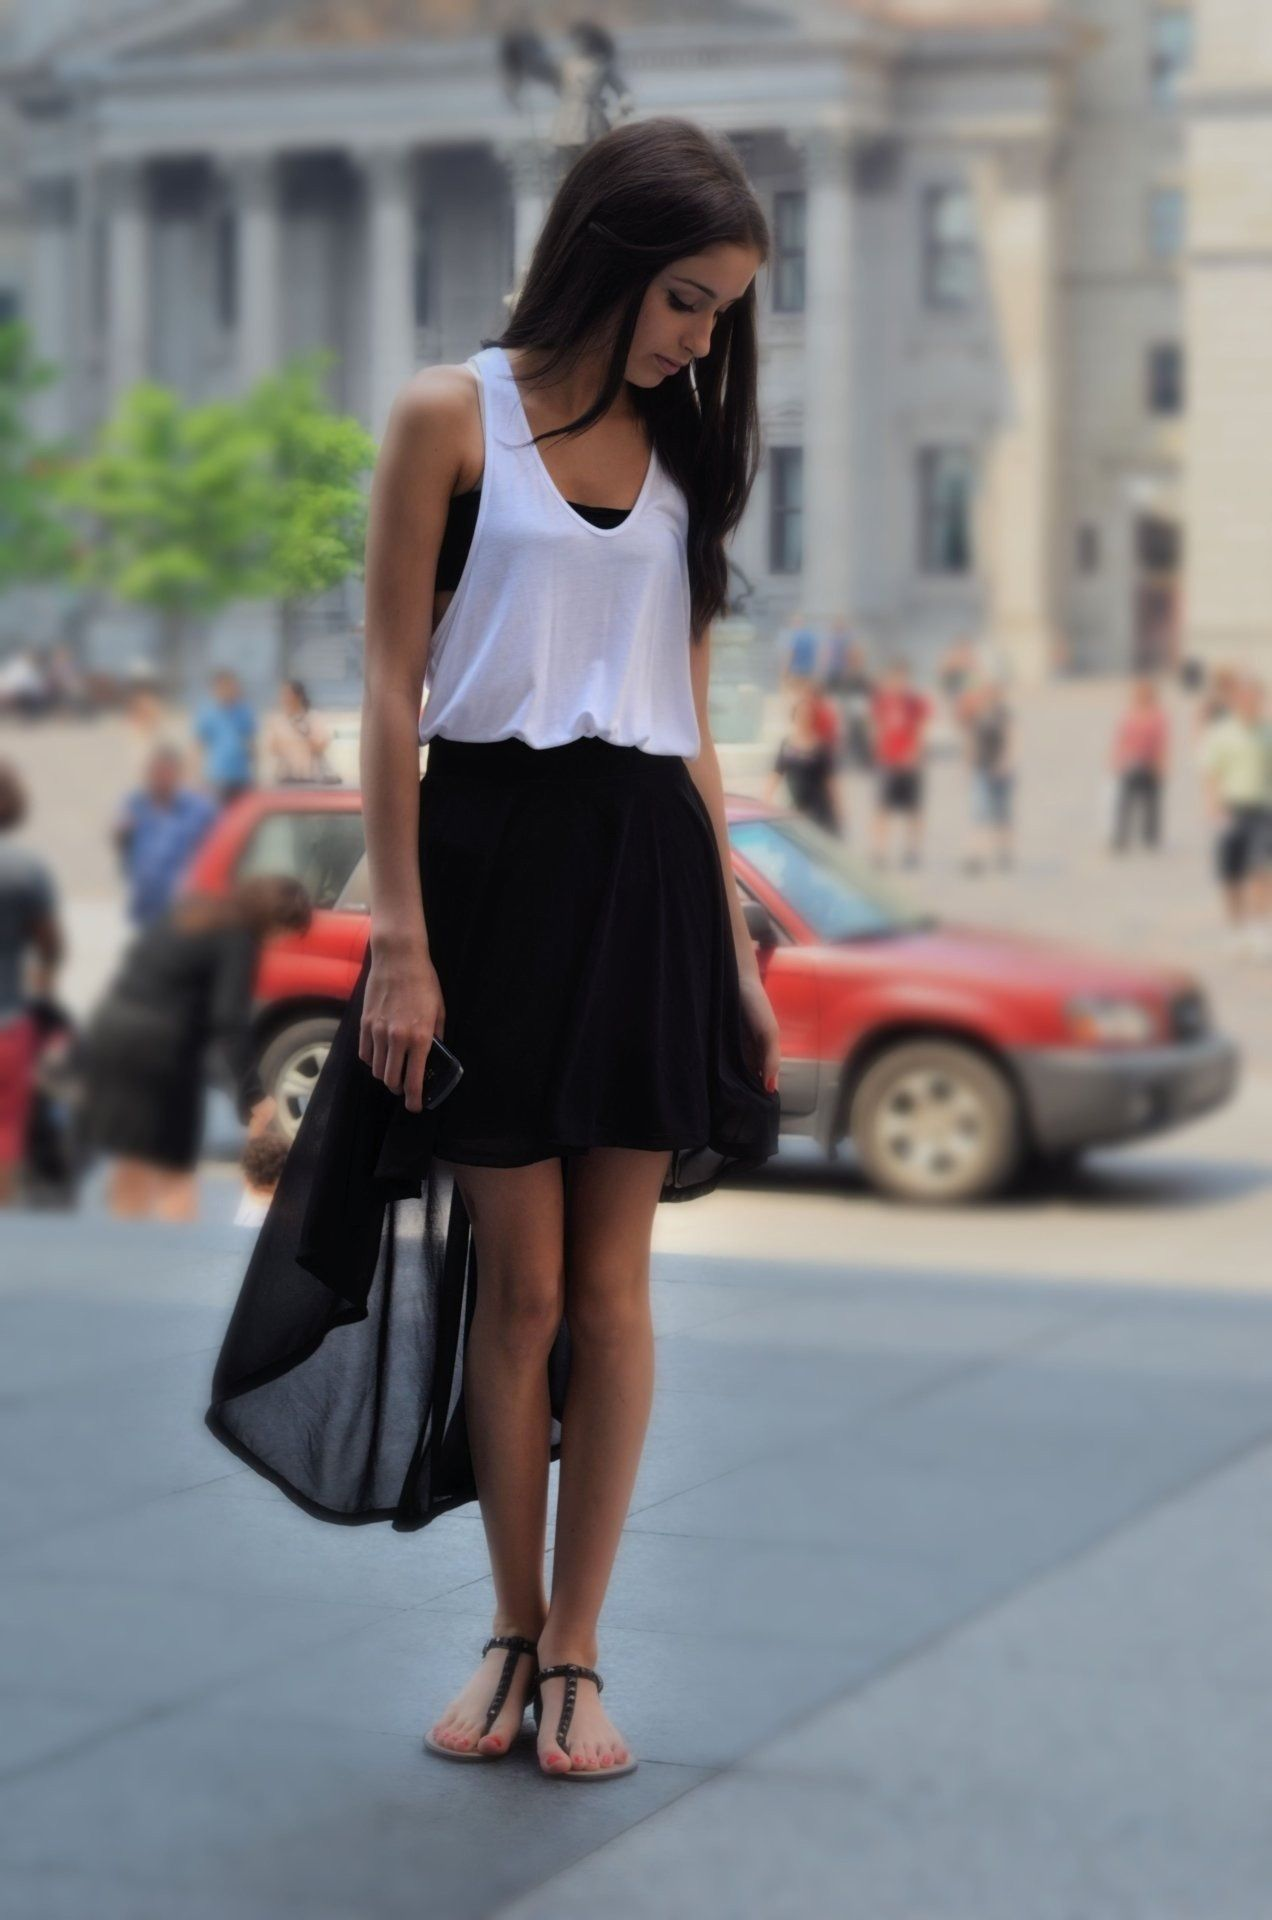 High black low skirts outfits photo images